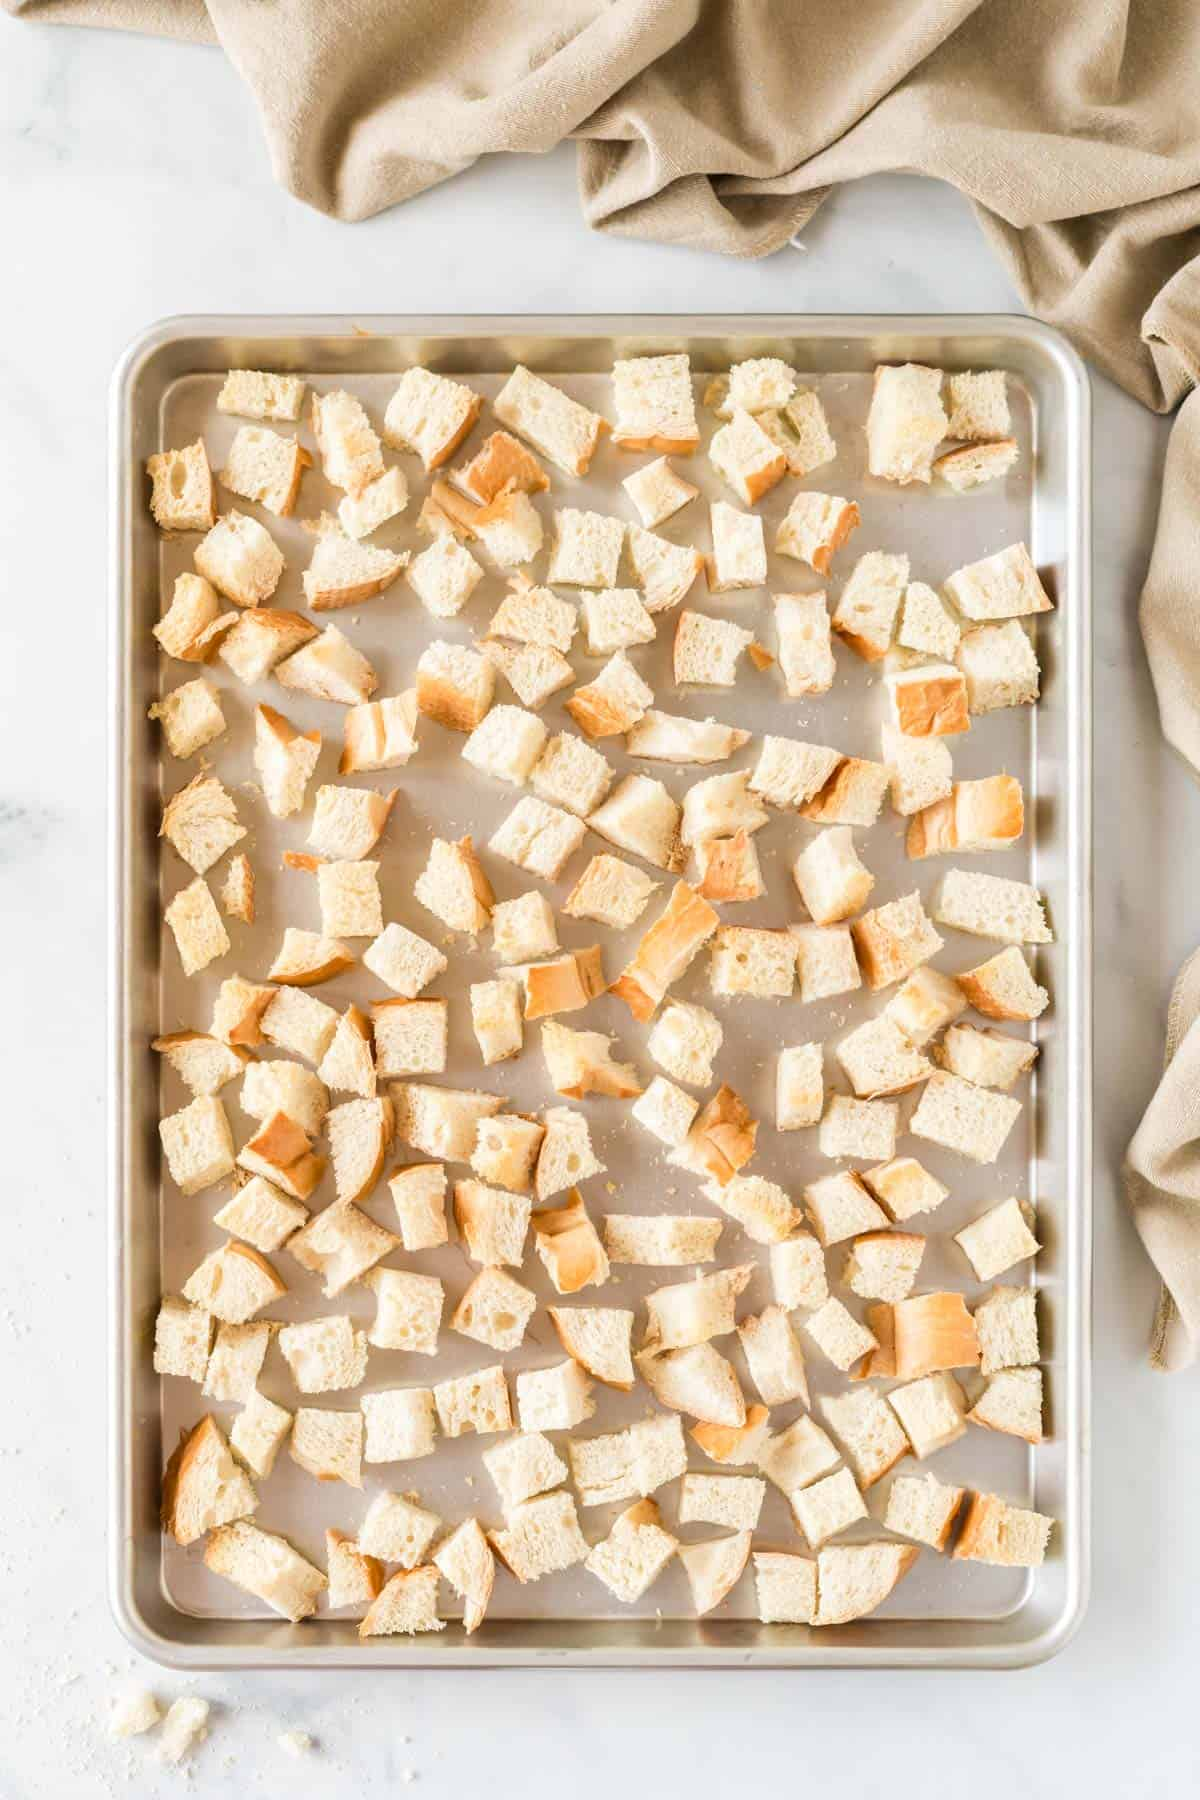 cubed bread on a baking sheet